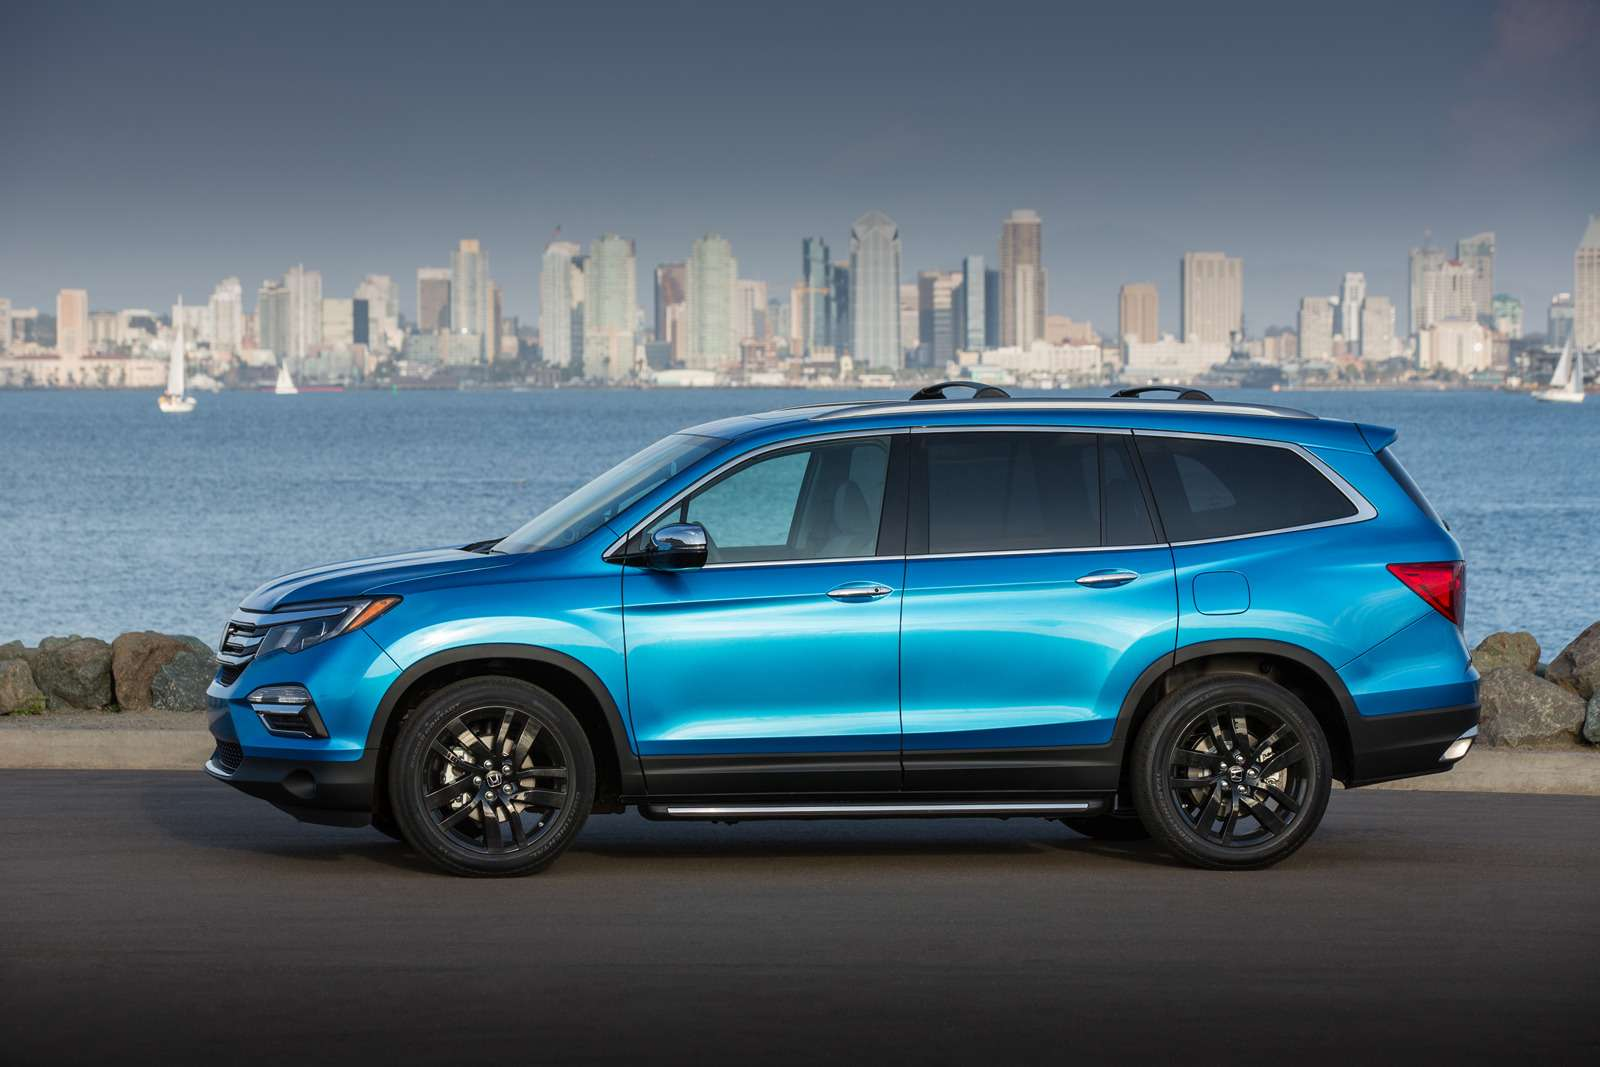 2016 Honda Pilot with accessory package